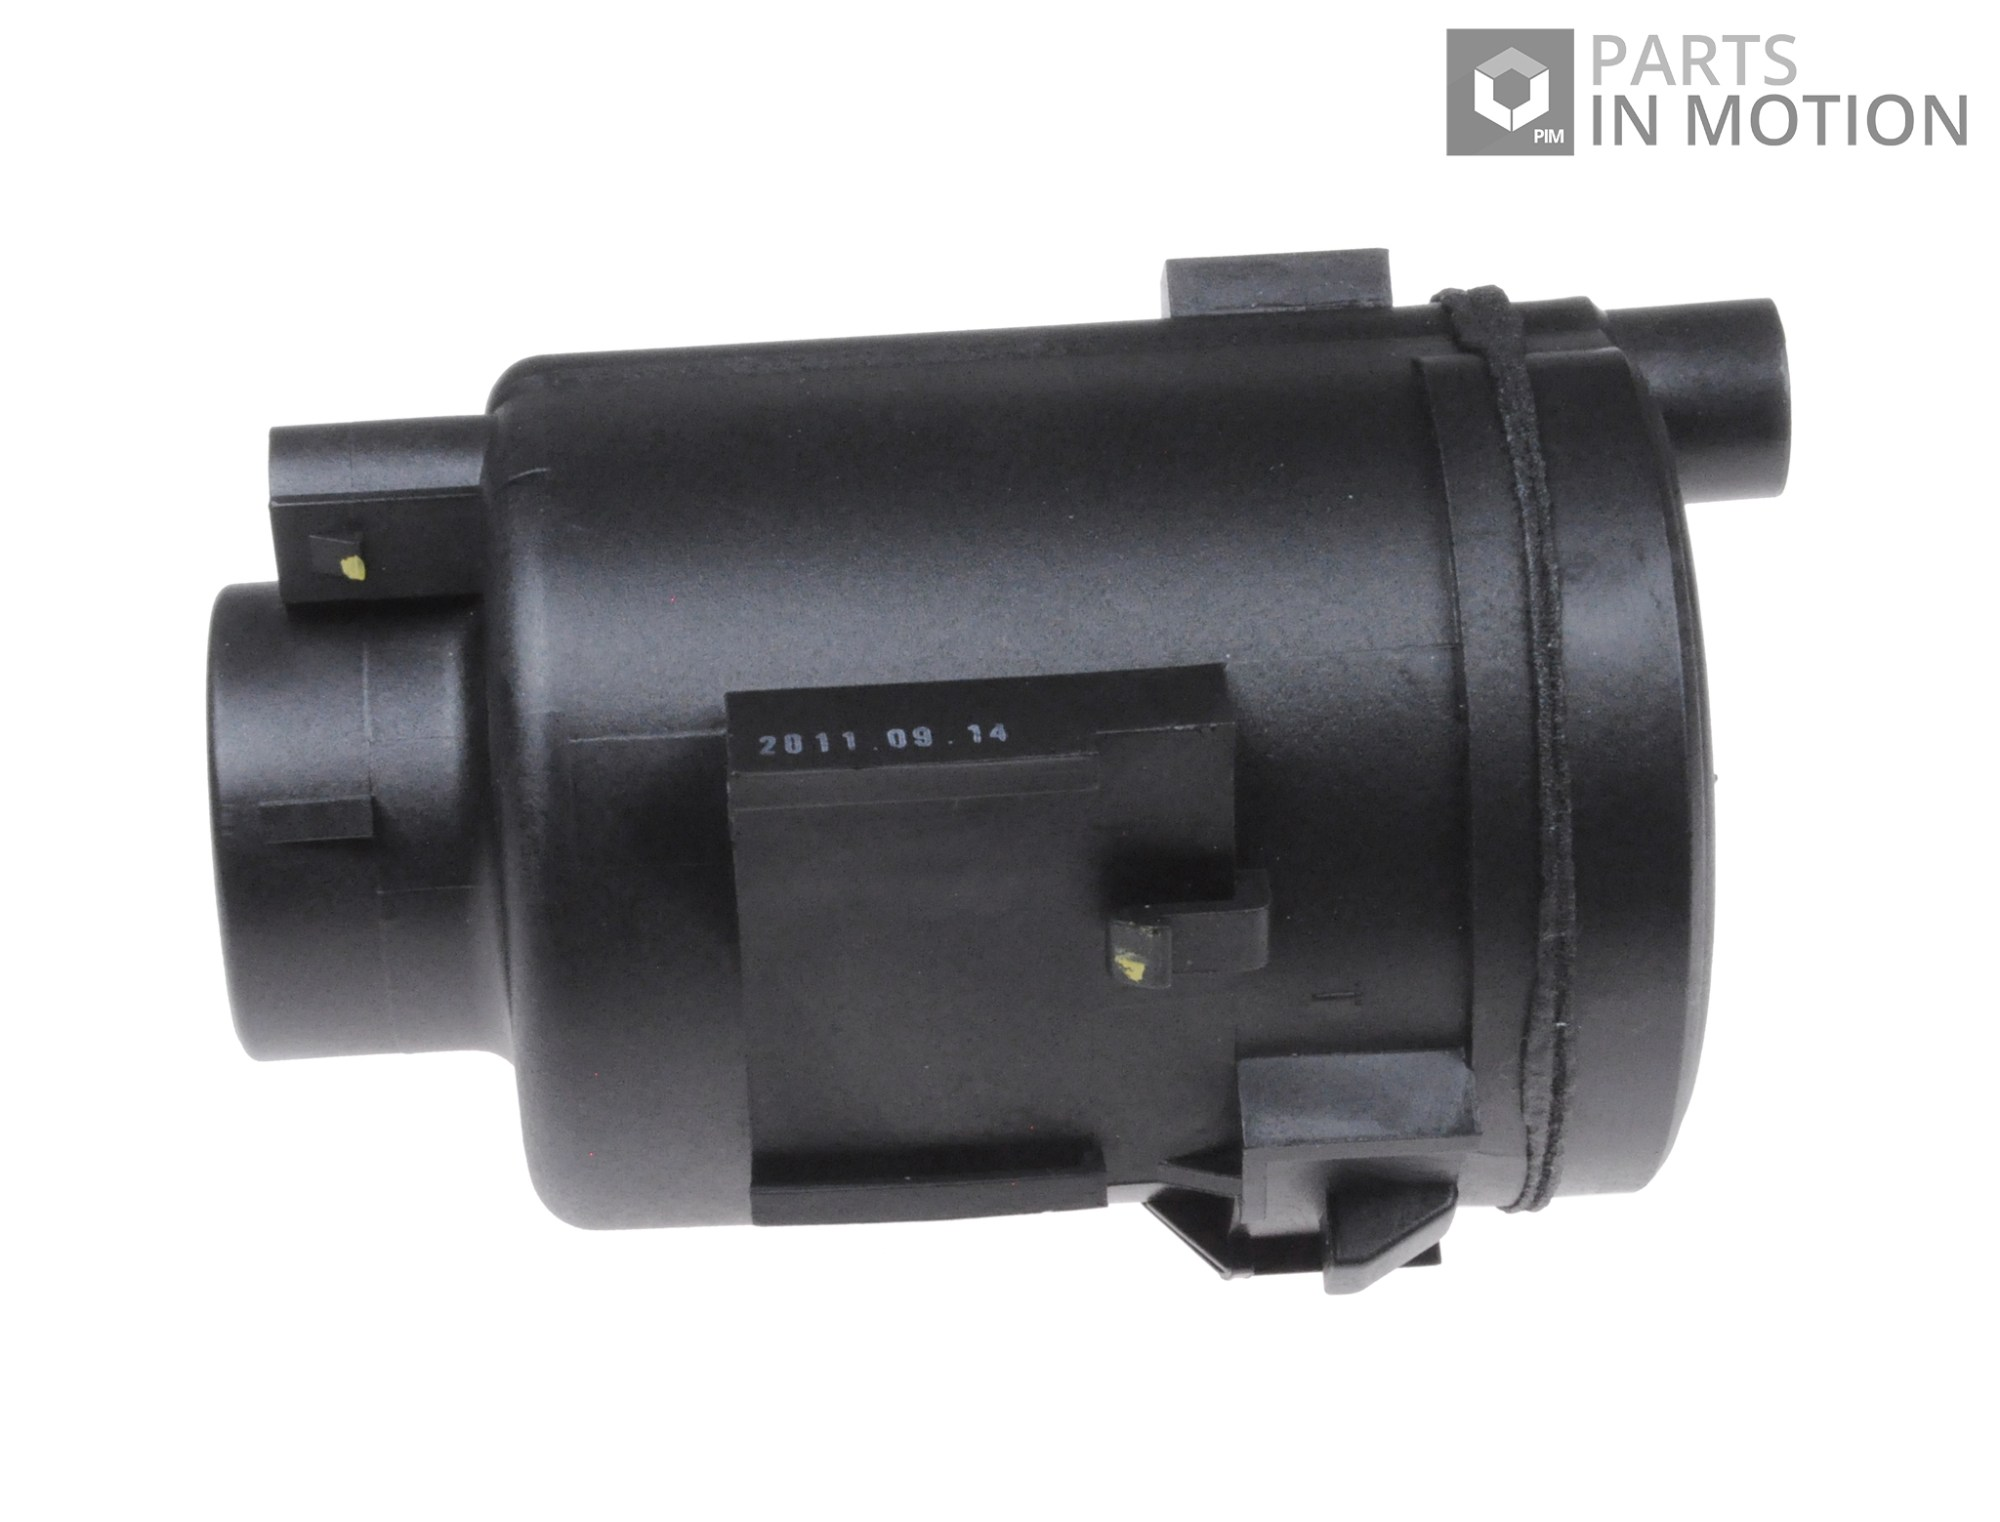 hight resolution of fuel filters air intake fuel delivery fuel filter fits hyundai getz tb 1 3 02 to